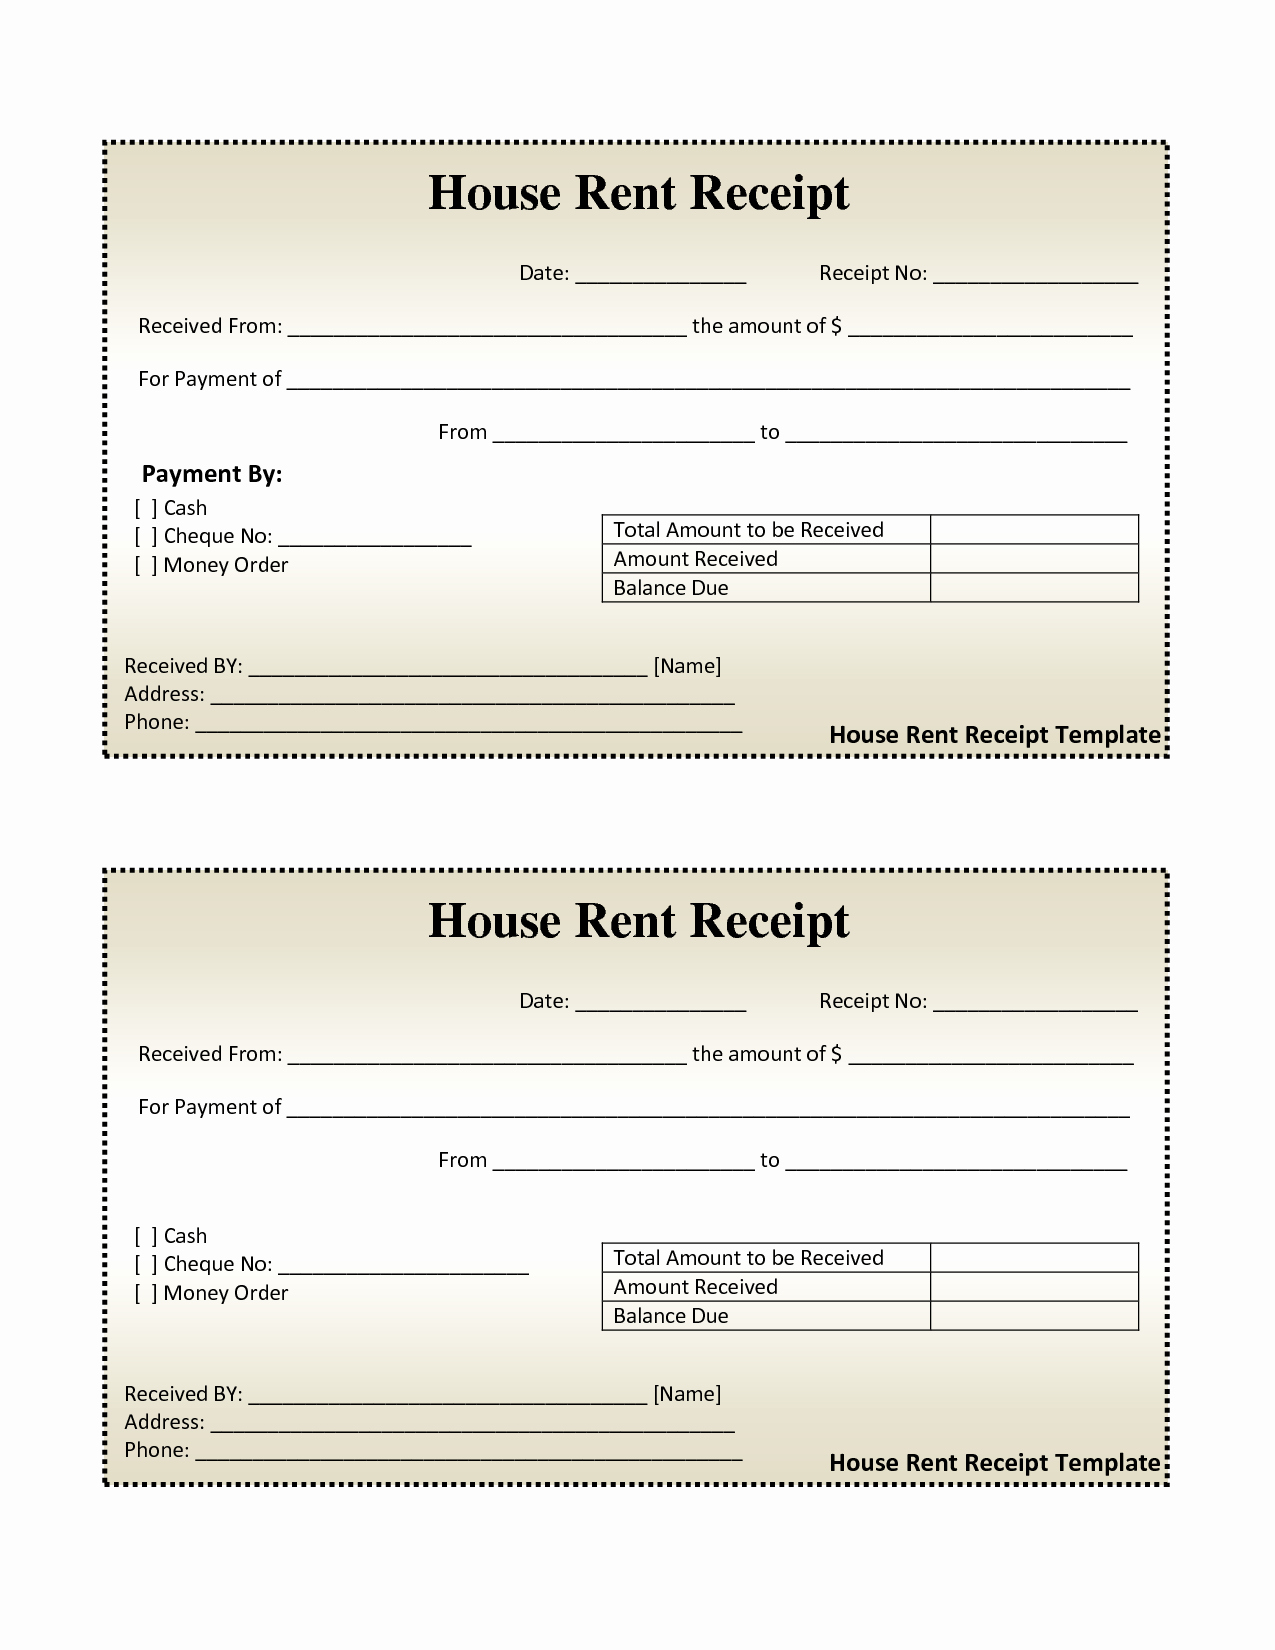 Invoice and Receipt Template Elegant Free House Rental Invoice